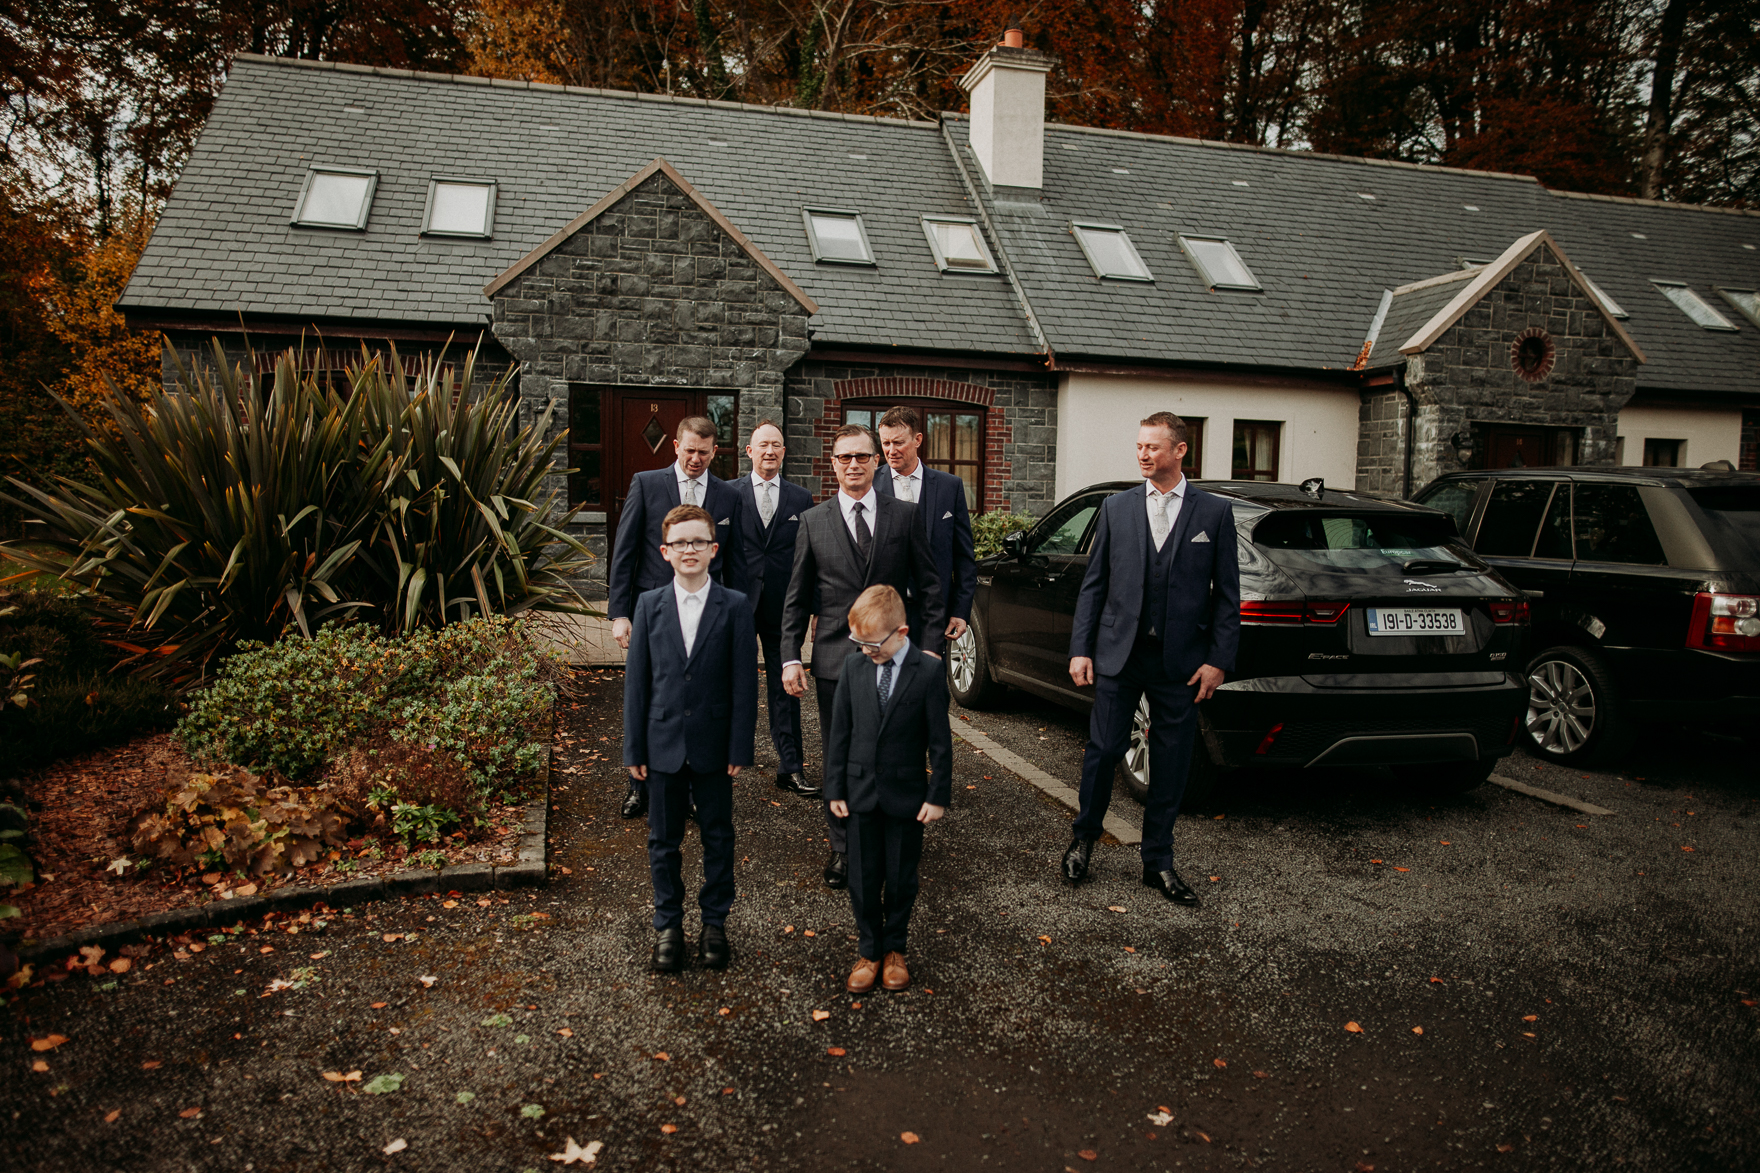 A group of people standing in a parking lot in front of a house